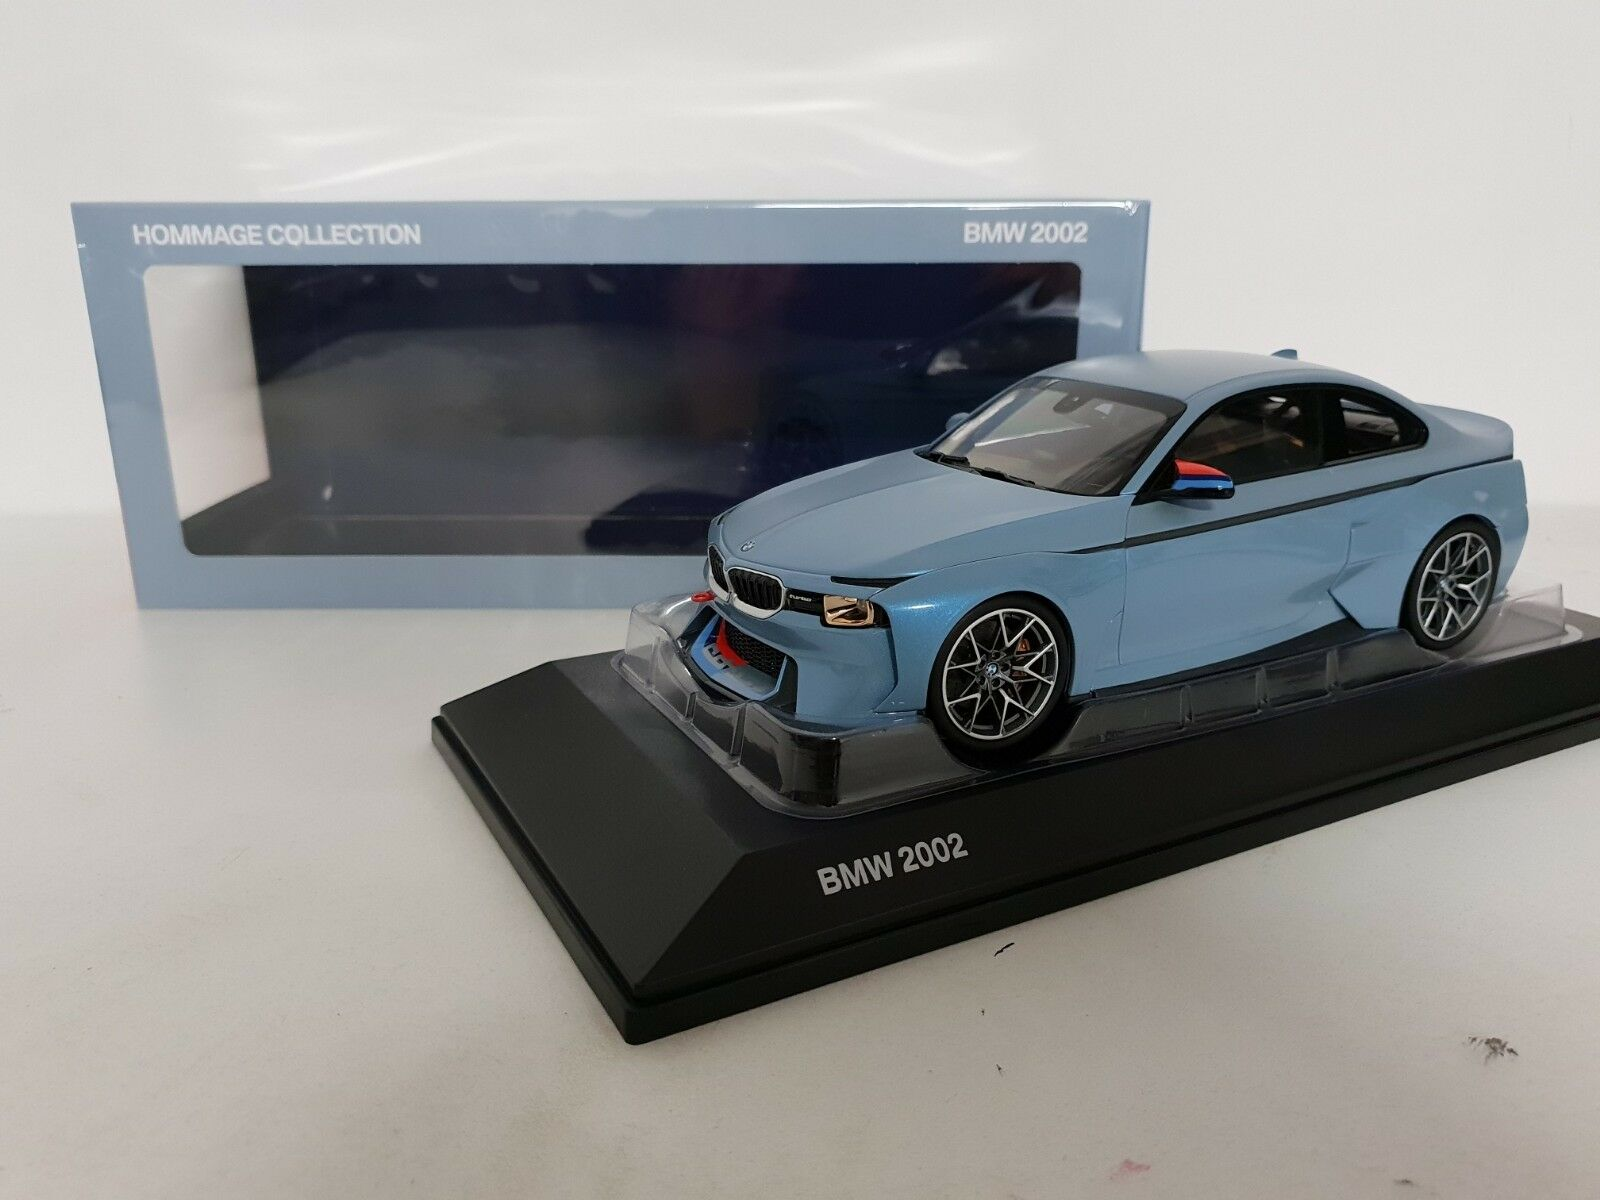 Bmw 2002 homenaje Collection Iceblu Wit m Stripes norev 1 18 traficantes Edition